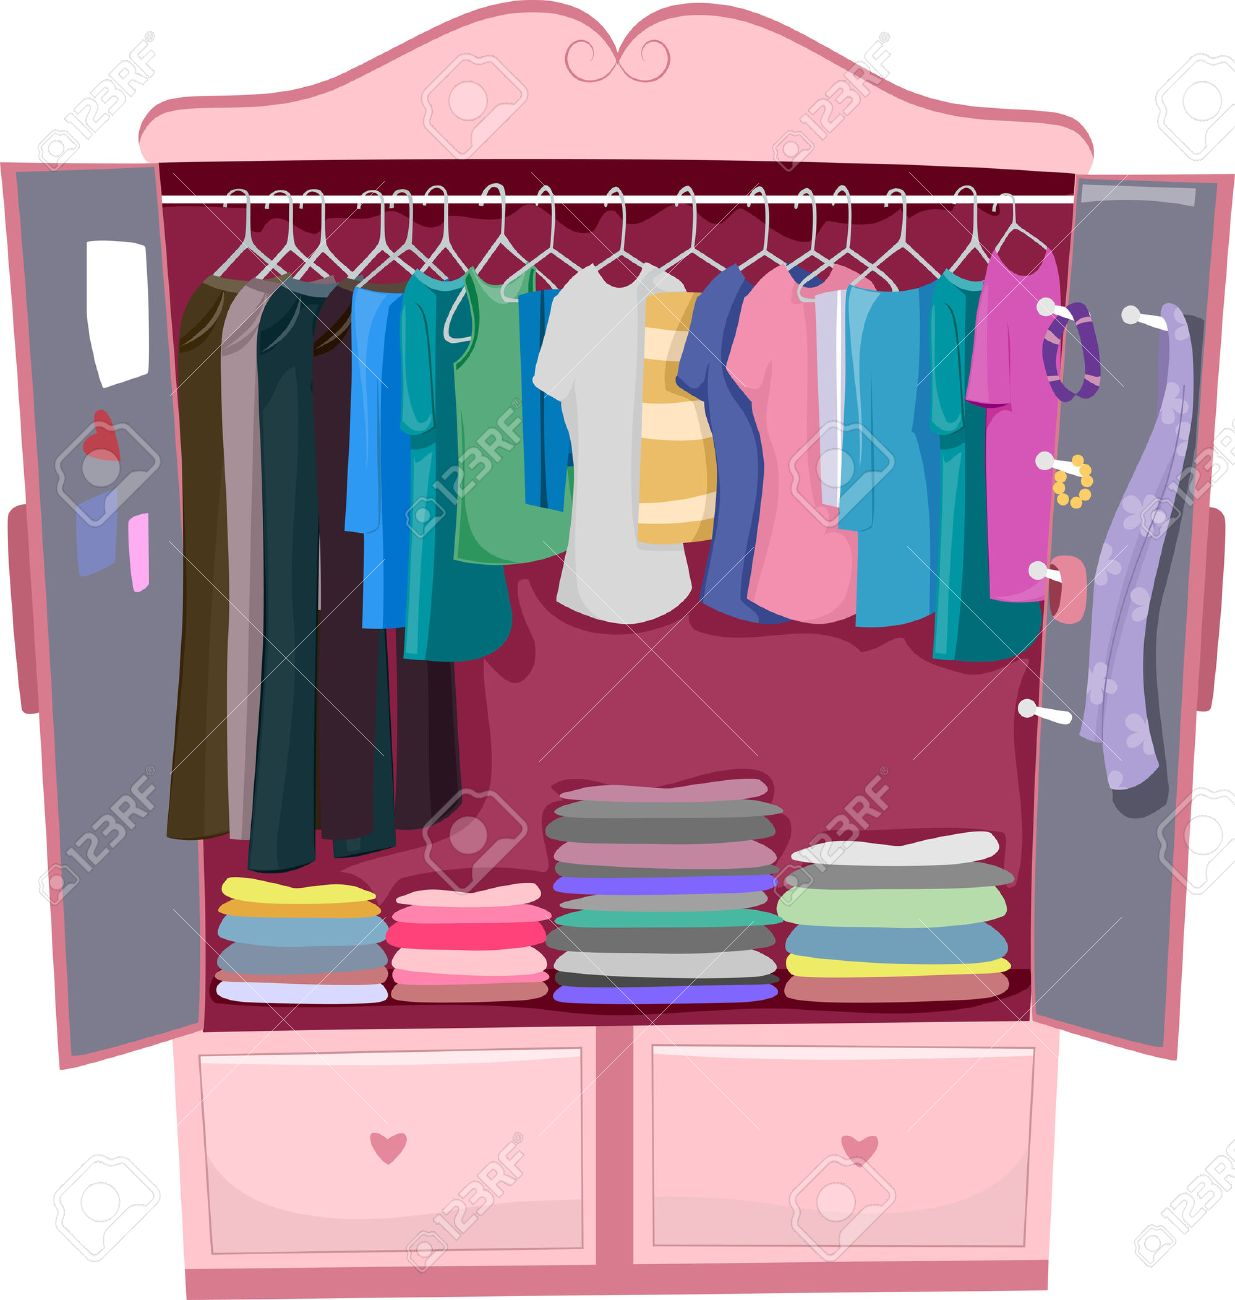 Wardrobe clipart  Illustration Of A Pink Wardrobe Full Of Women's Clothes Royalty ...